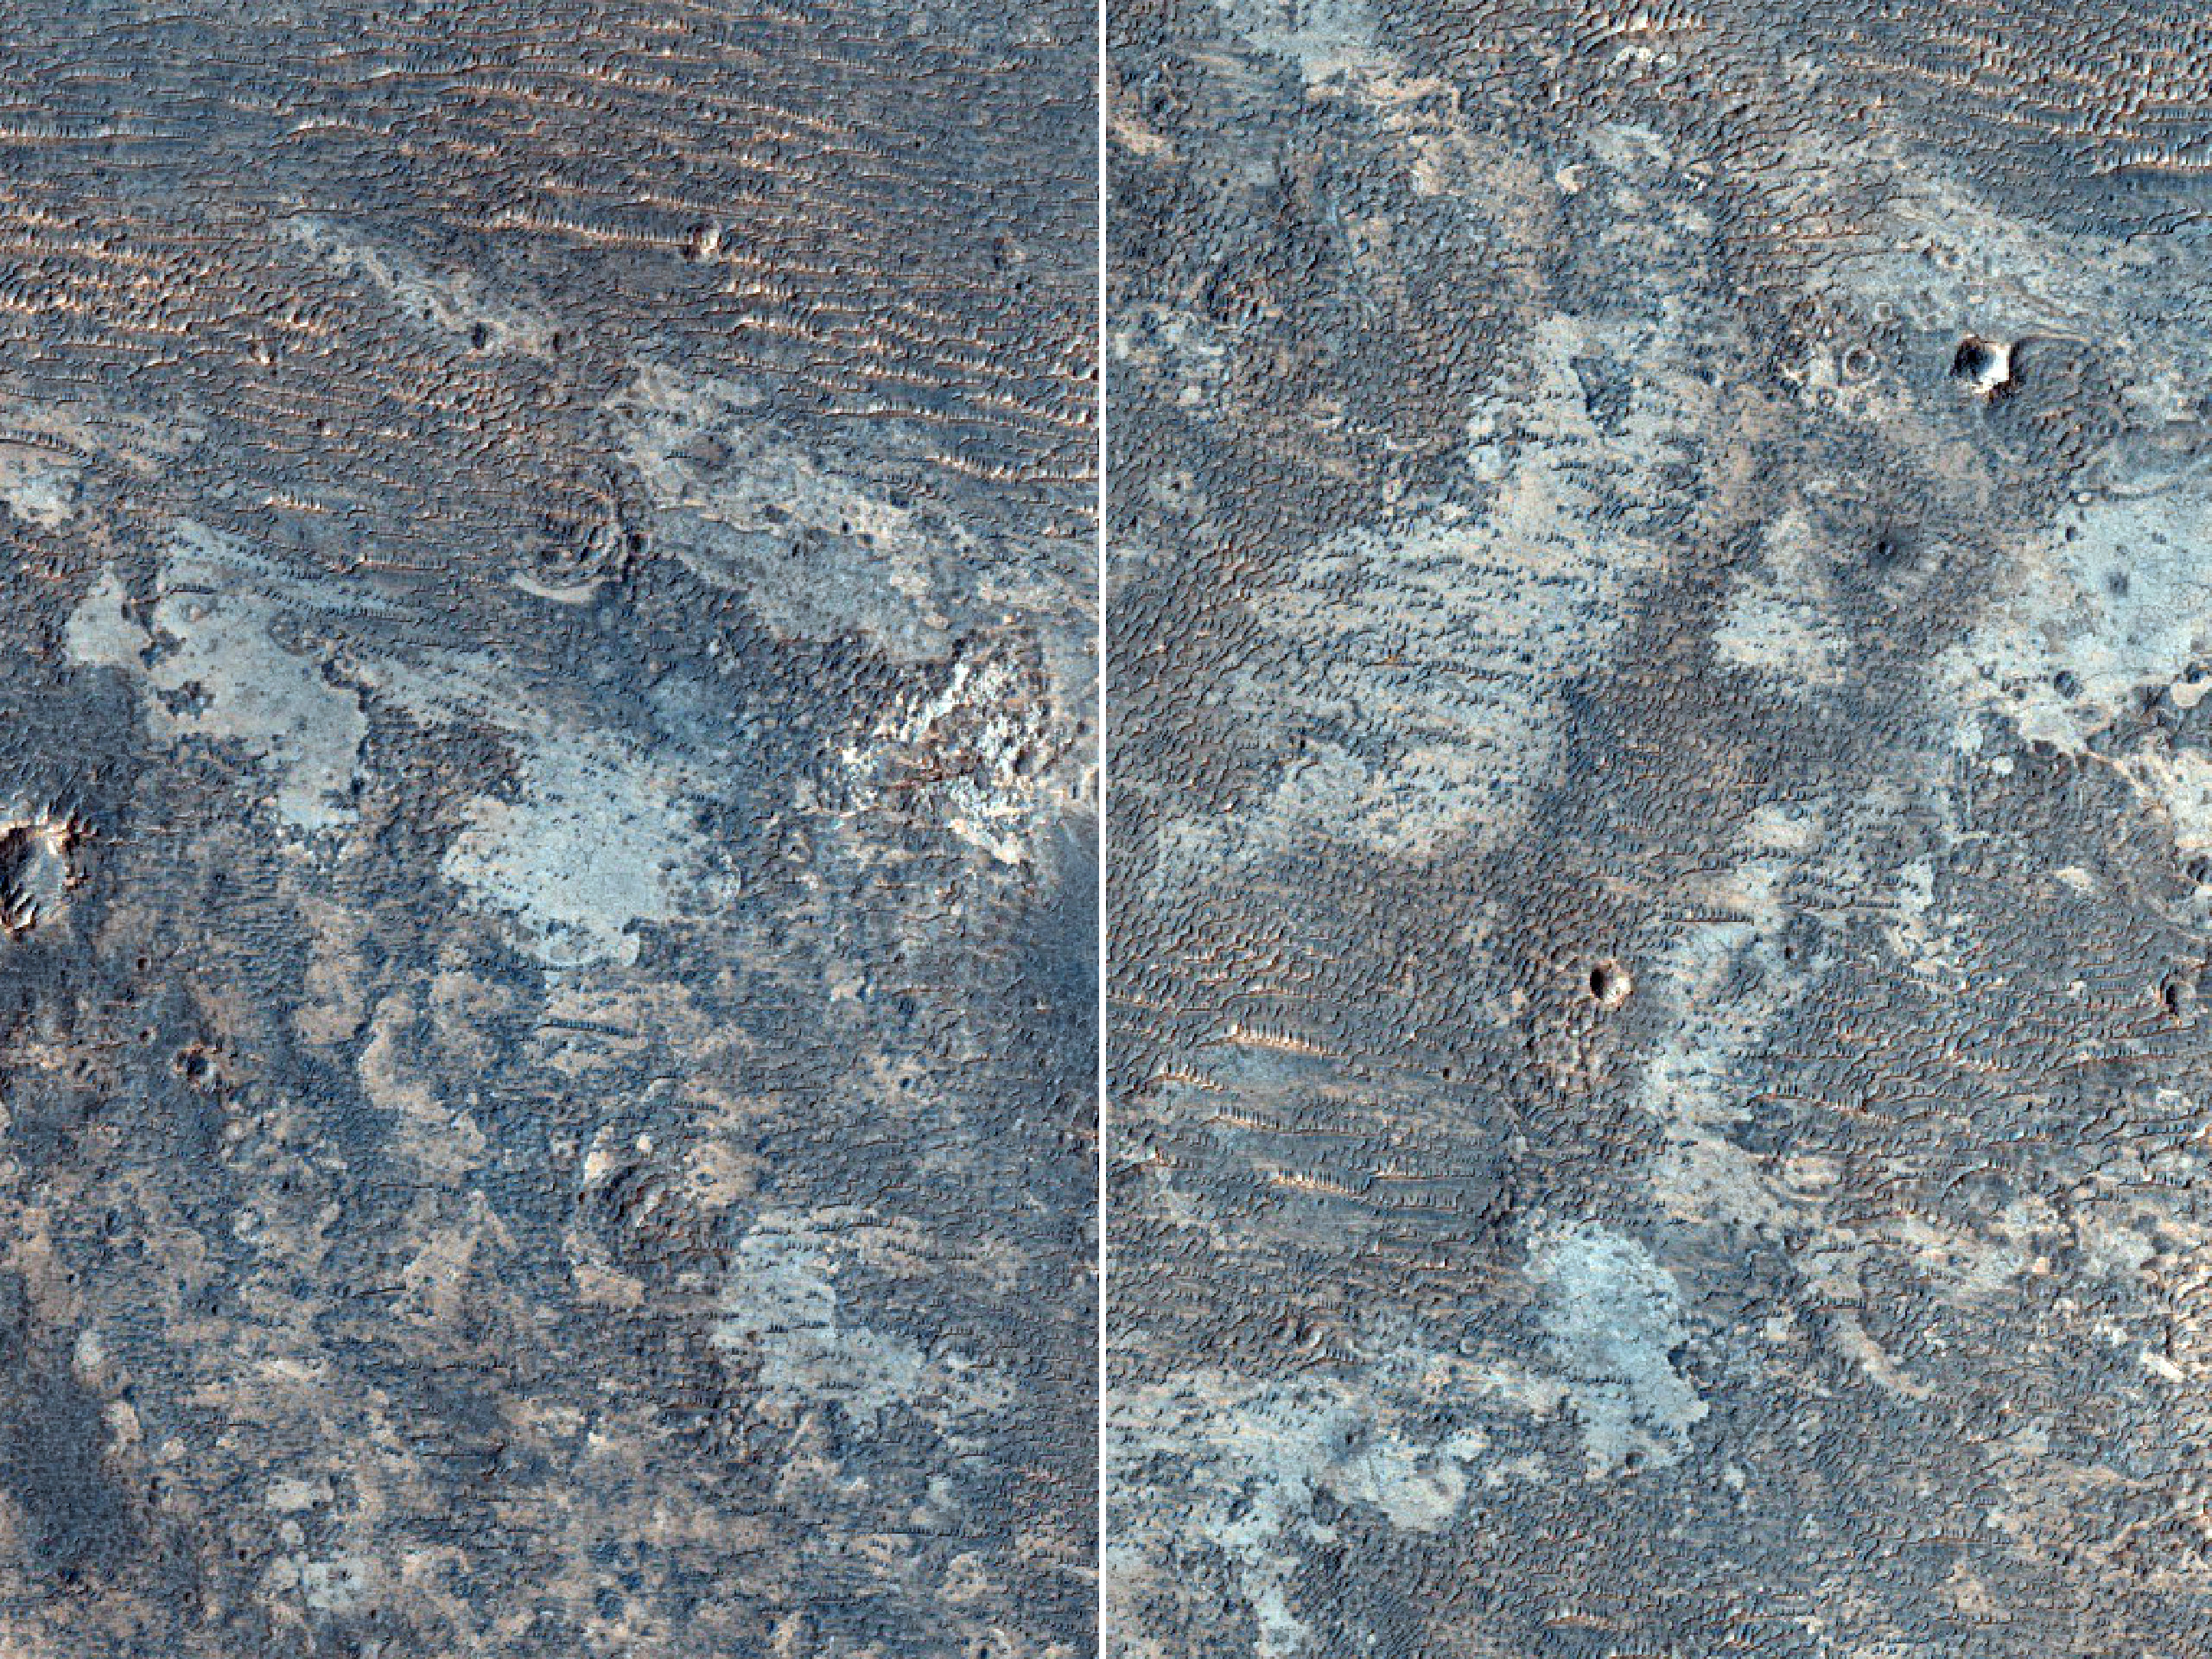 Material Exposed in Plains South of Louros Valles